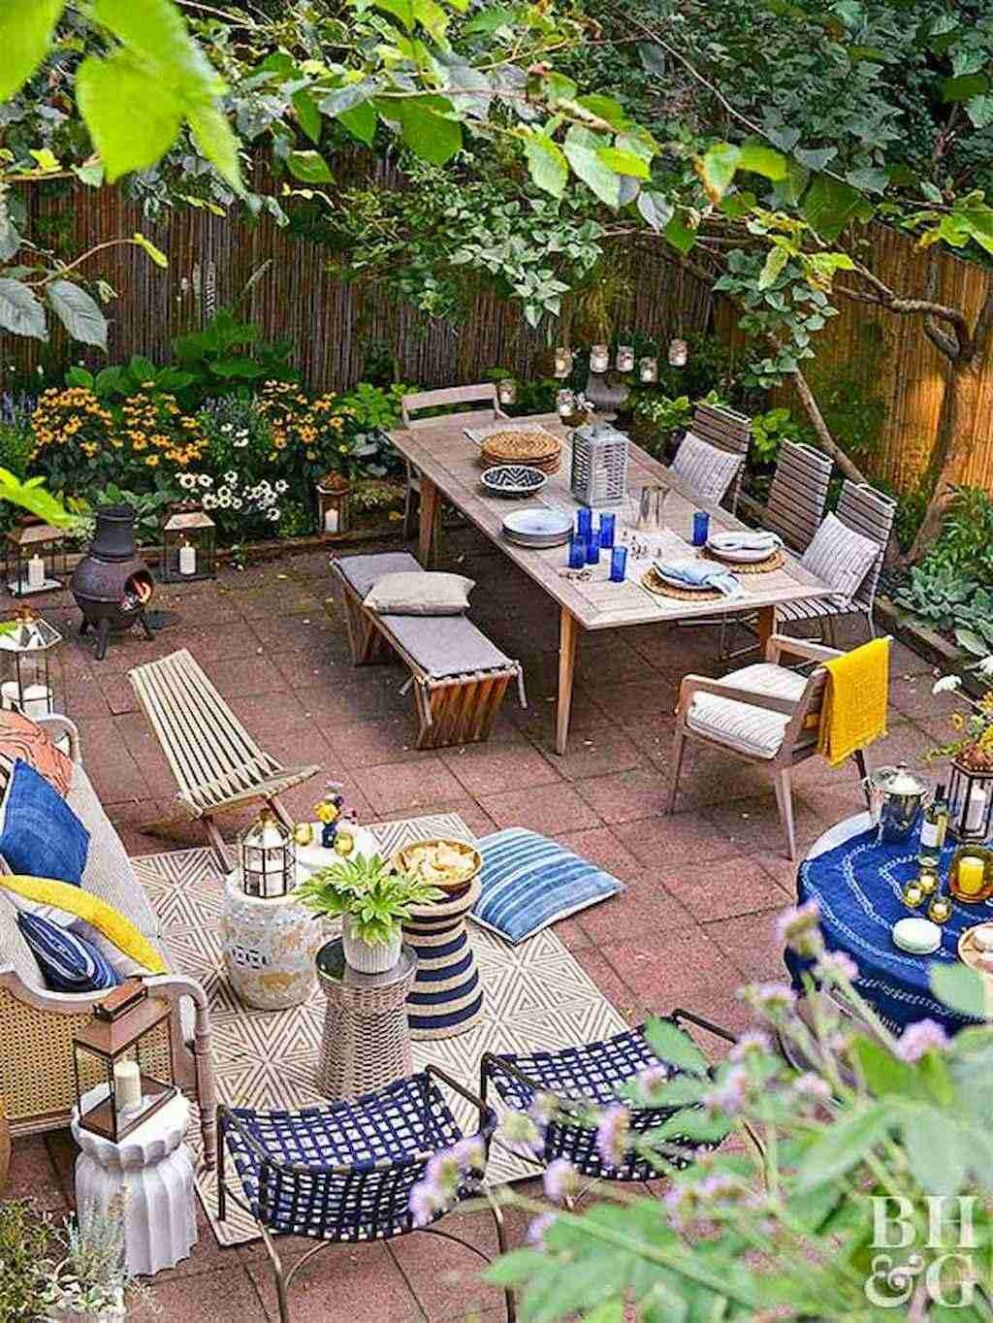 11 Eclectic Backyard Ideas On A Budget For Small Yard ...